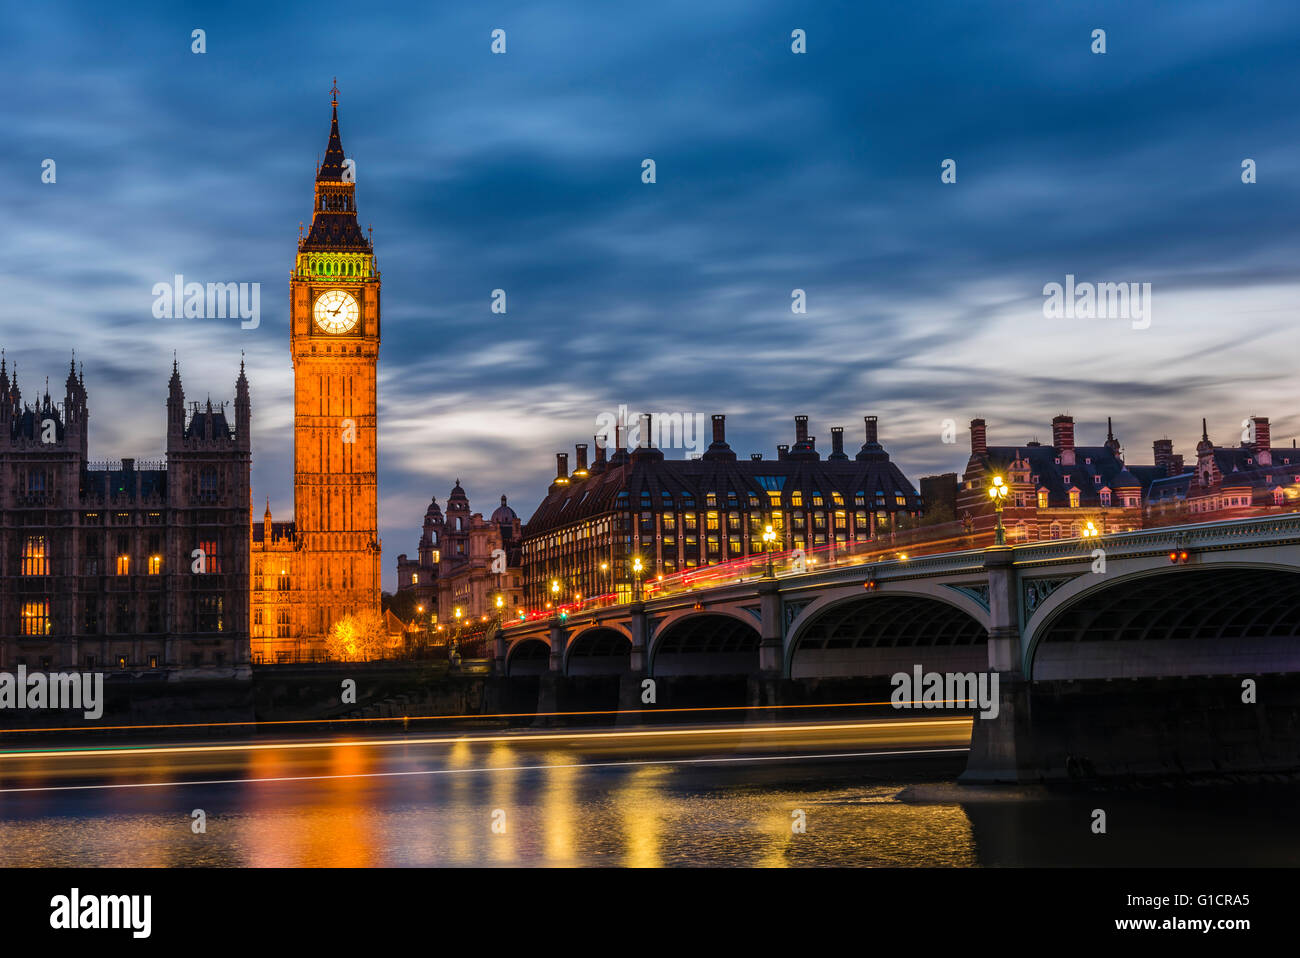 Long exposure at dusk of buses on Westminster Bridge and boats on the River Thames, London, UK. - Stock Image